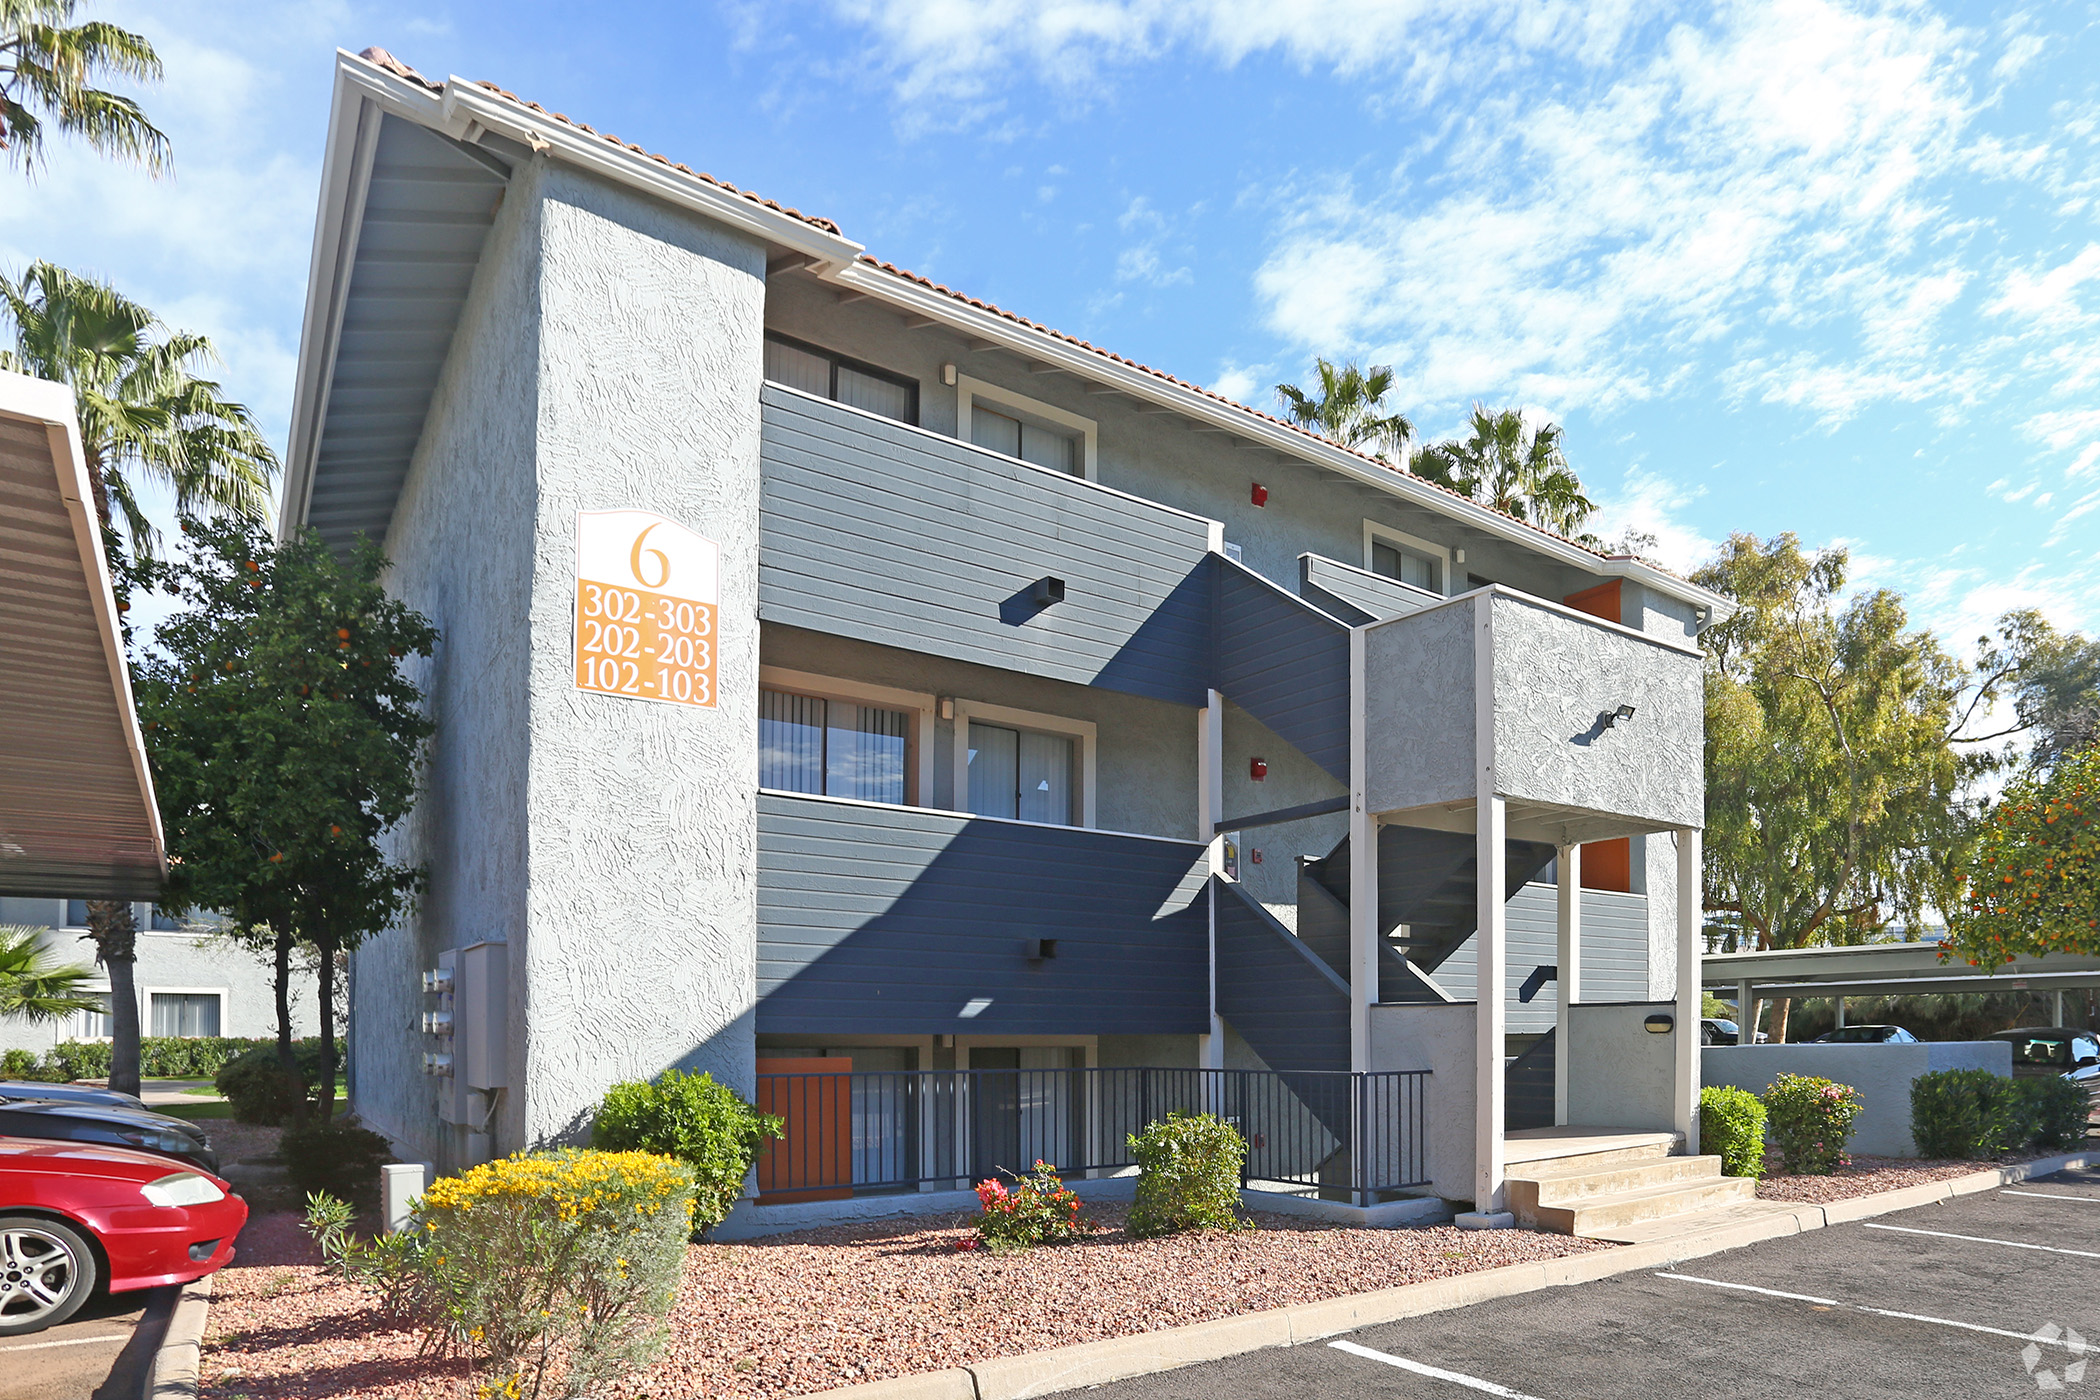 The Riverside apartments were built in 1985 and renovated in 2017. (CoStar)